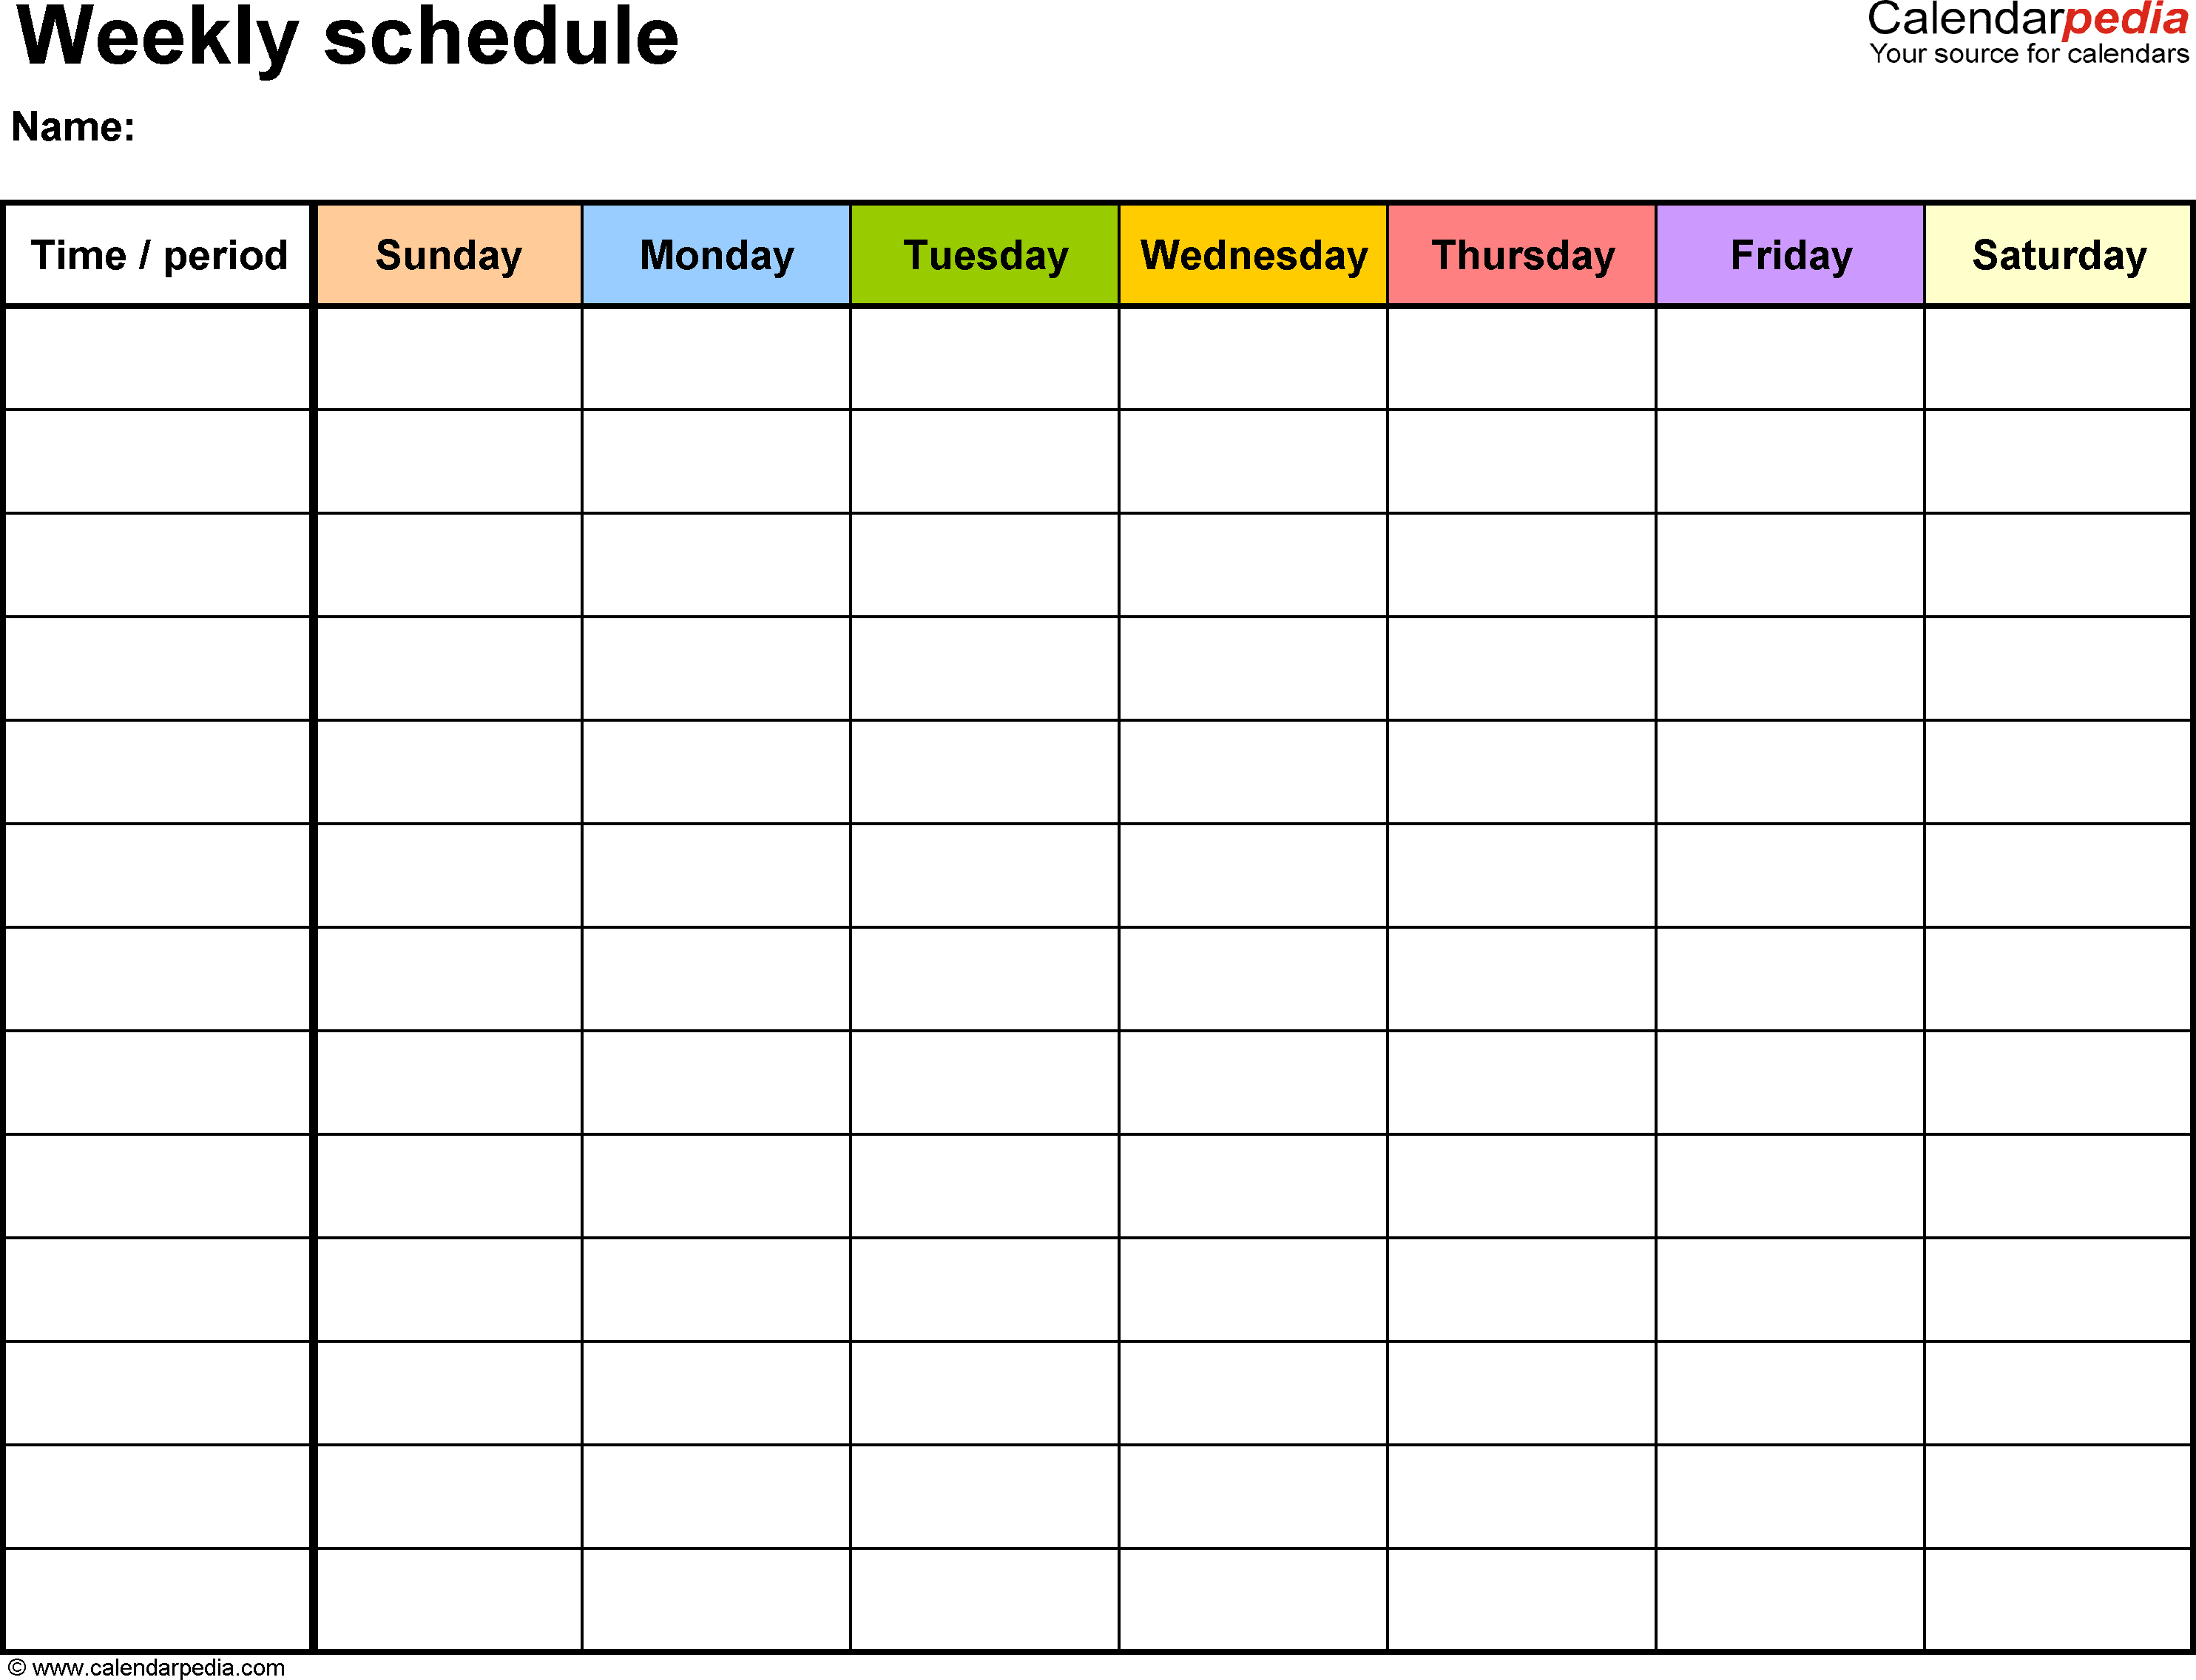 Sunday Through Saturday Calendar Template  Yatay within Monday Through Friday Calendar Template